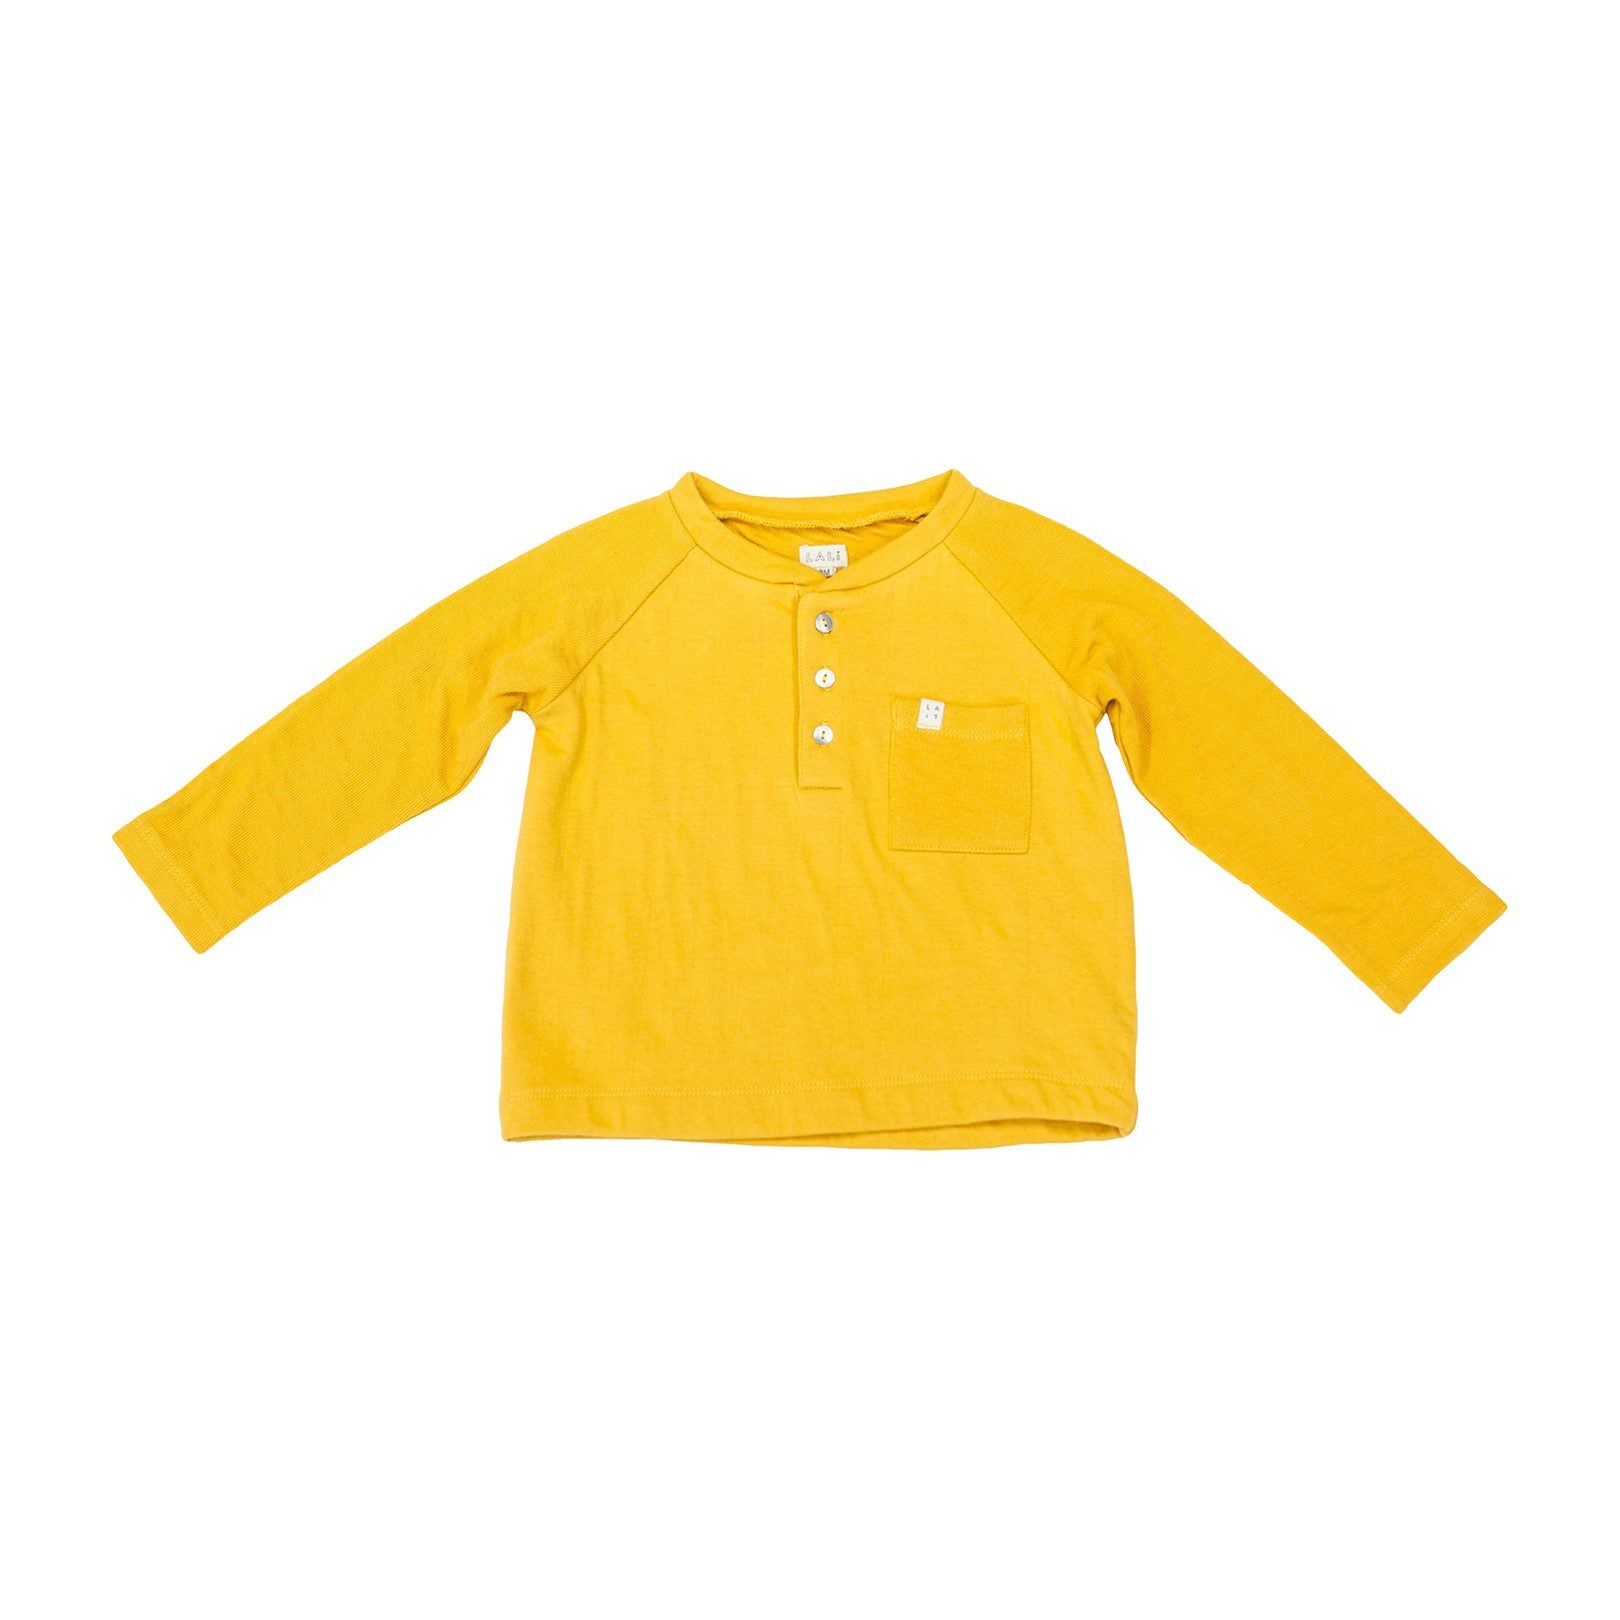 HENLEY SHIRT, MUSTARD | SPINEL BOUTIQUE - Spinel Boutique